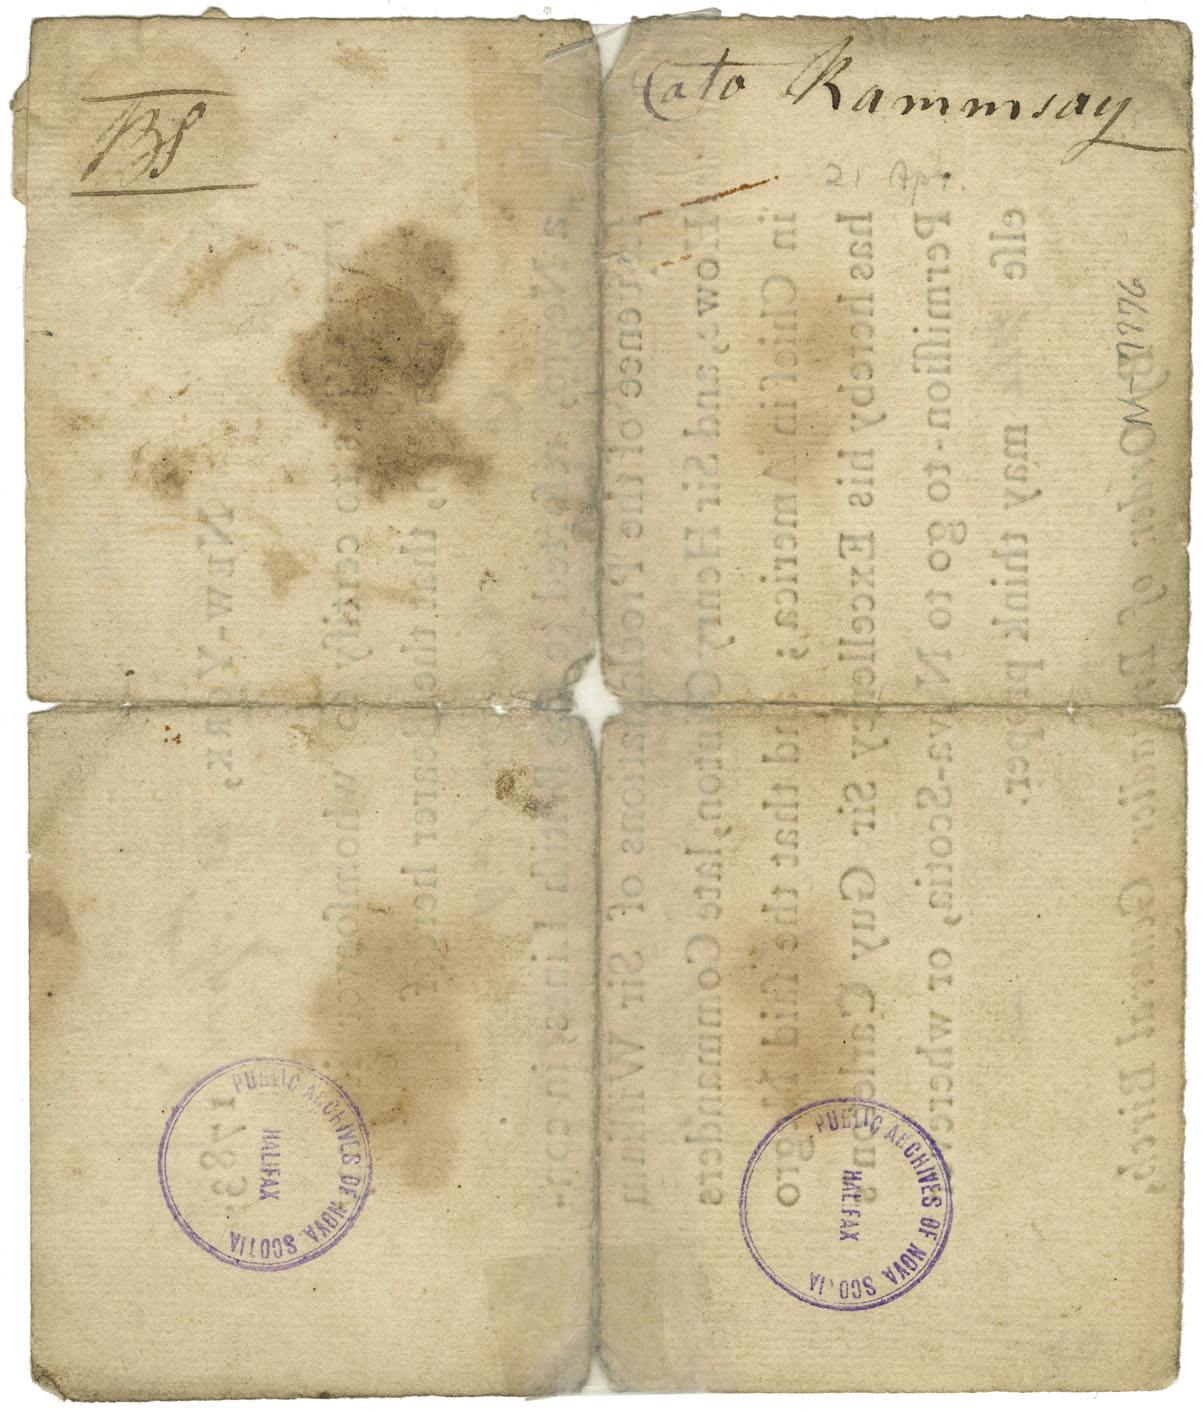 Passport for Cato Ramsay to emigrate to Nova Scotia